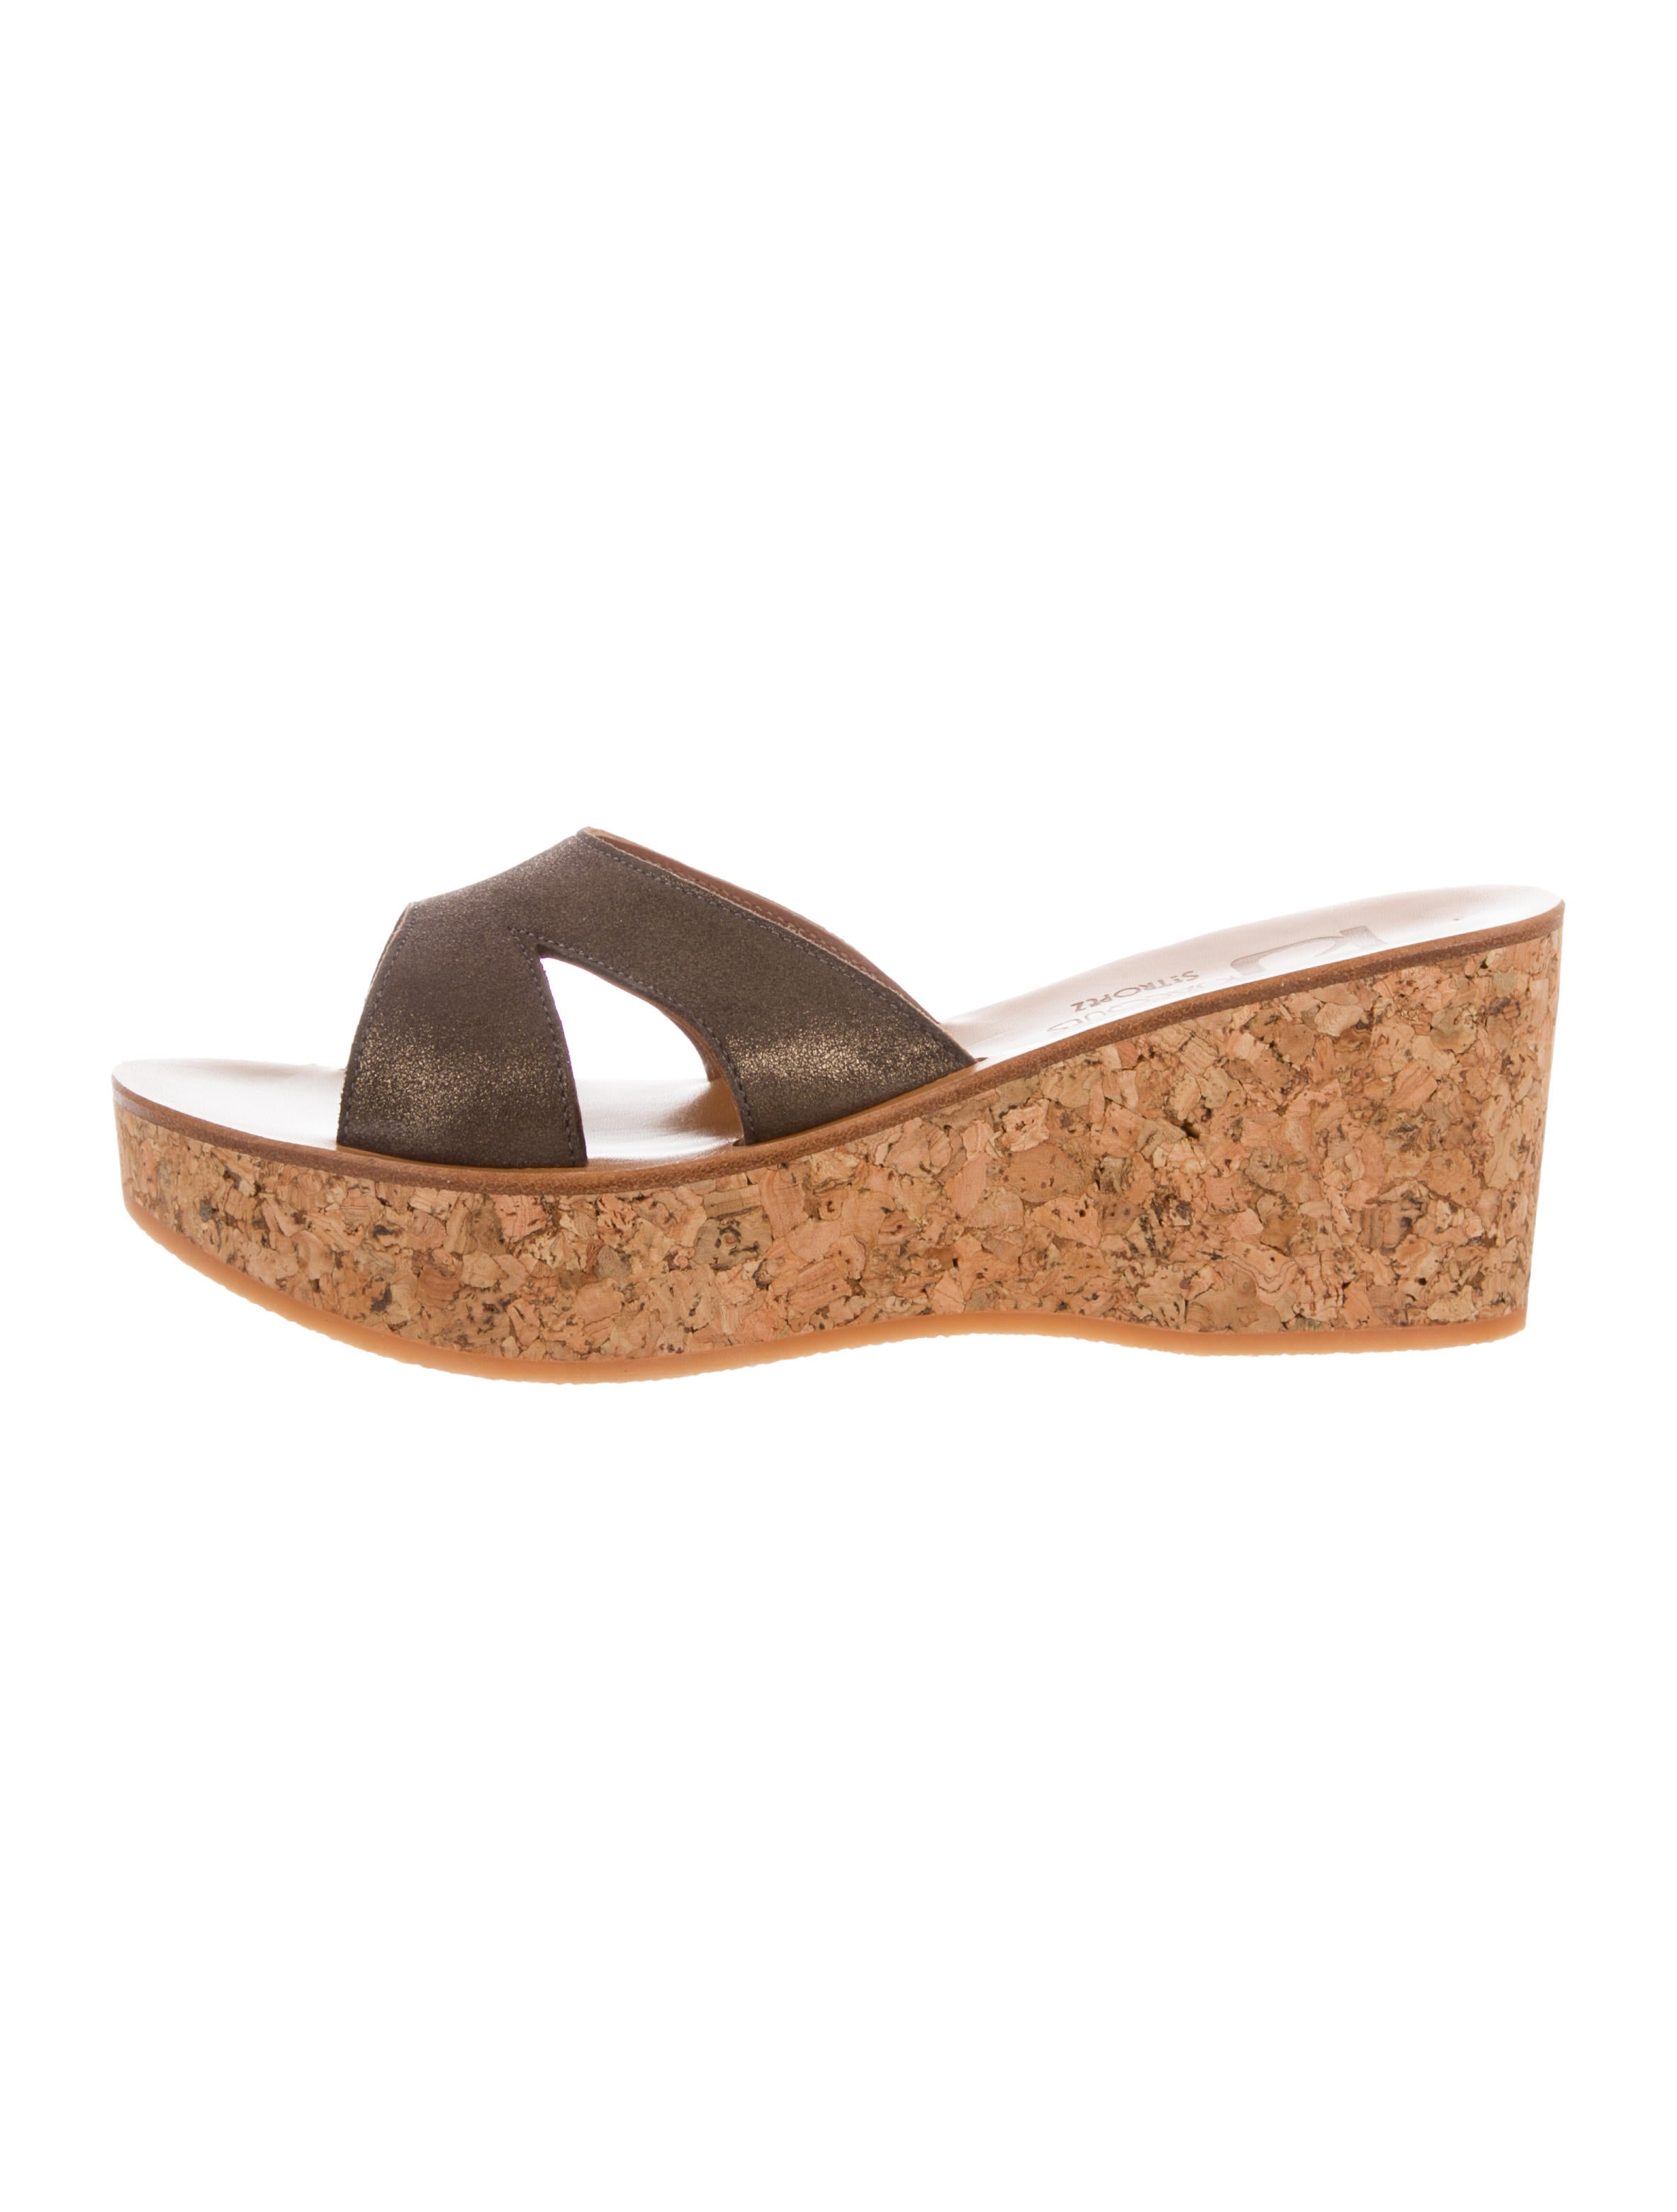 8aadf5d56736 K Jacques St. Tropez Kobe Wedge Sandals w  Tags - Shoes - WK021747 ...